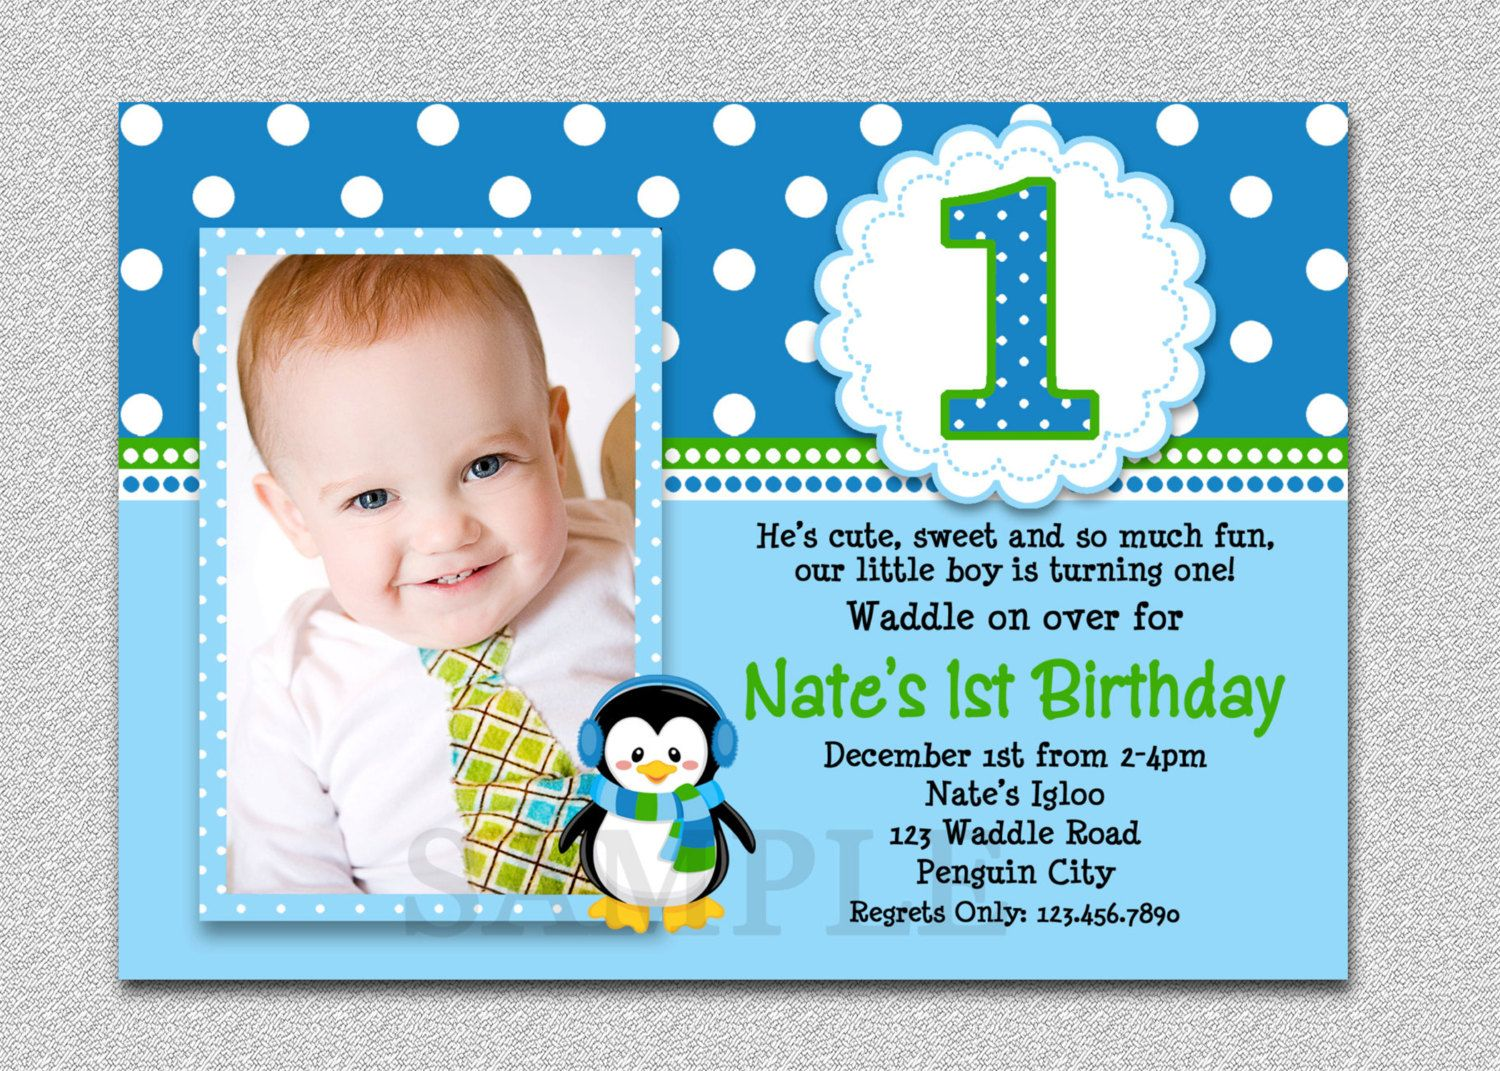 1st birthday invitations – Free First Birthday Invitations Templates